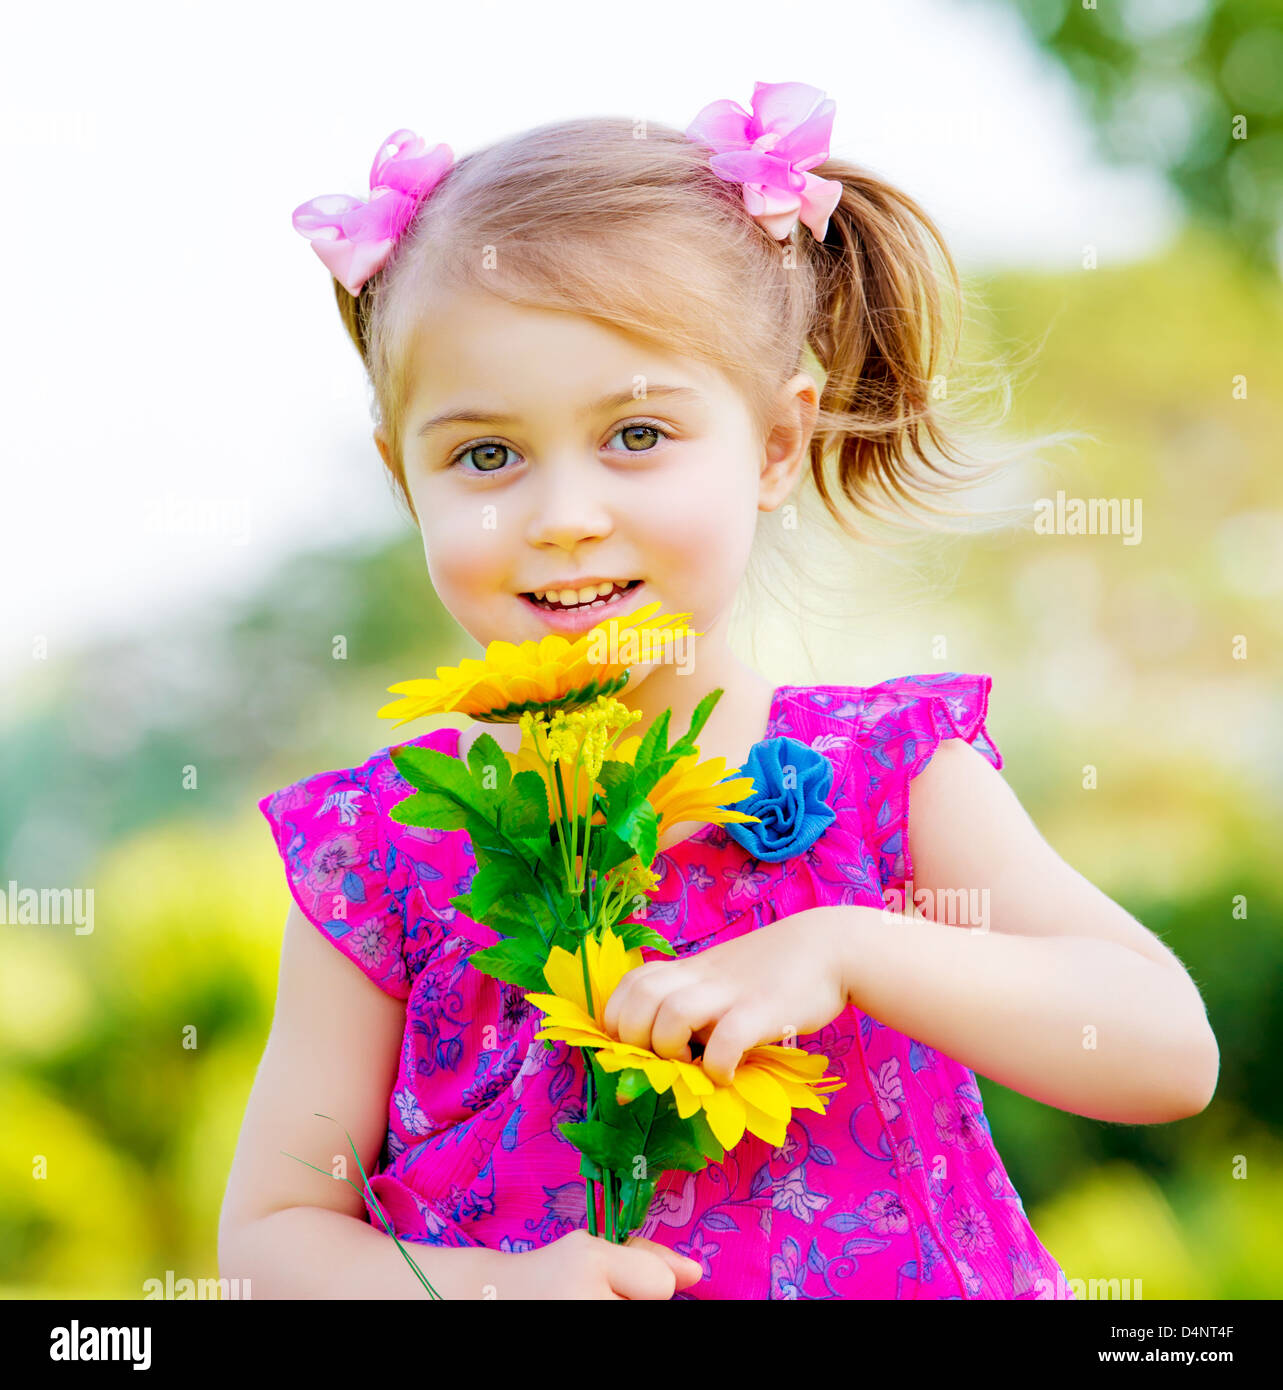 Happy baby girl playing outdoor cute child holding fresh sunflower flowers kid having fun in summer park